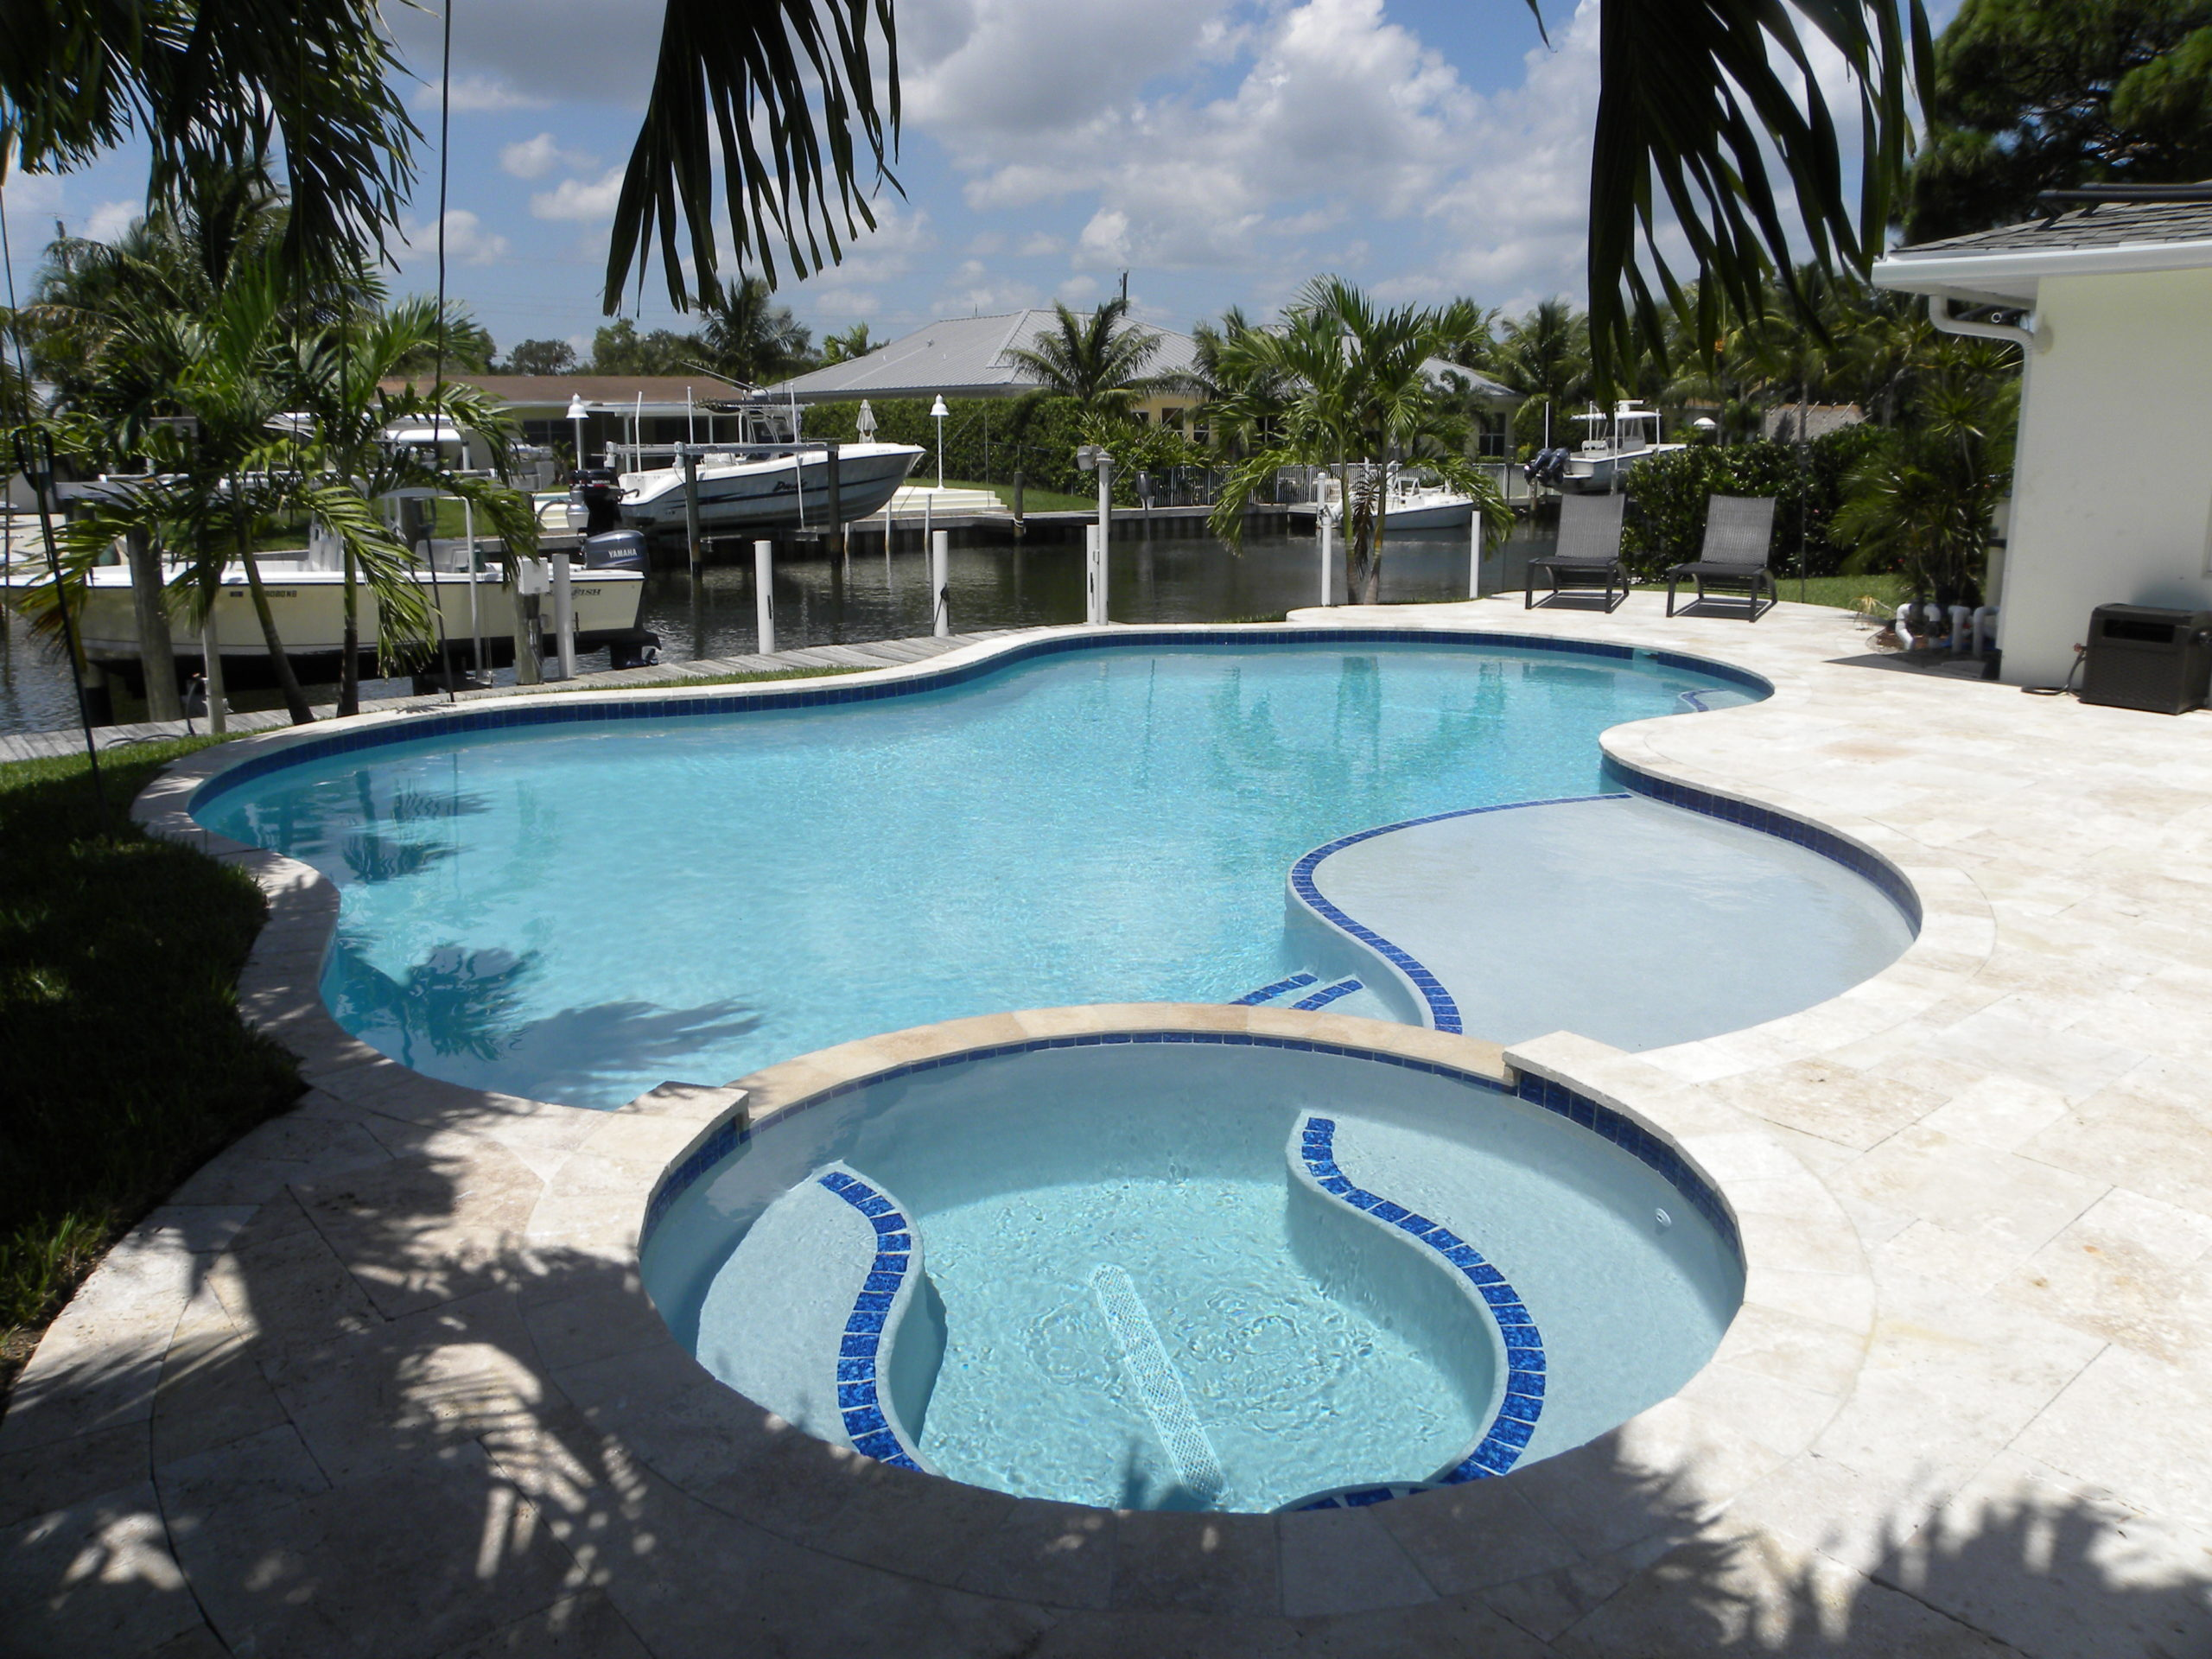 rhr pools of jupiter fl natural shaped pool with oversized step and spa